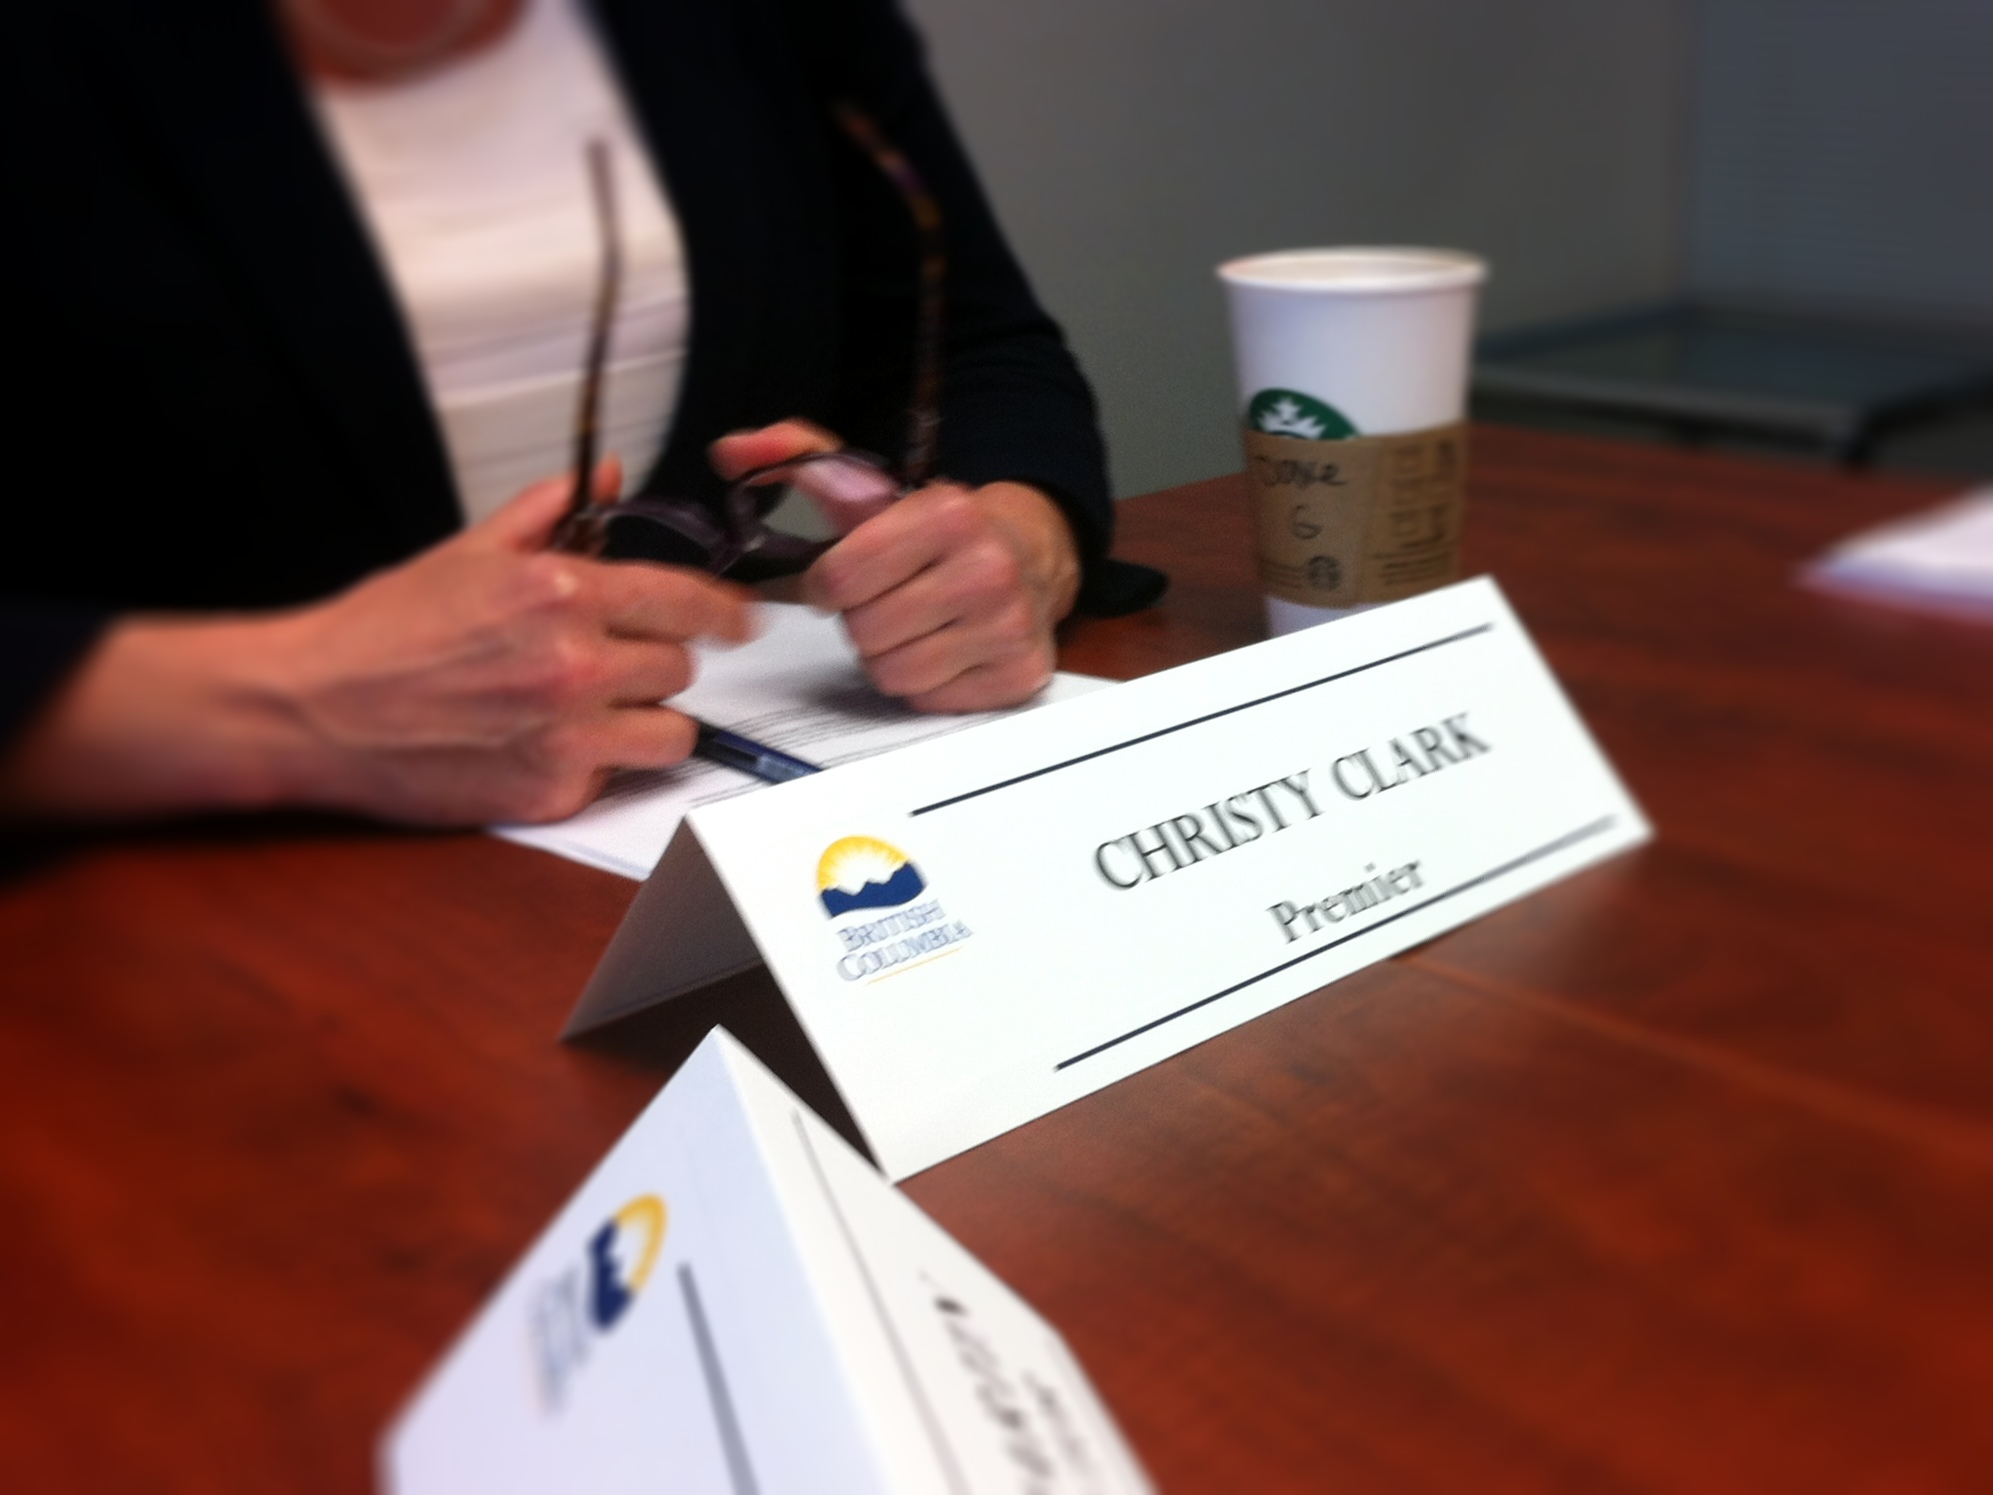 Christy Clark's name tag and Starbucks